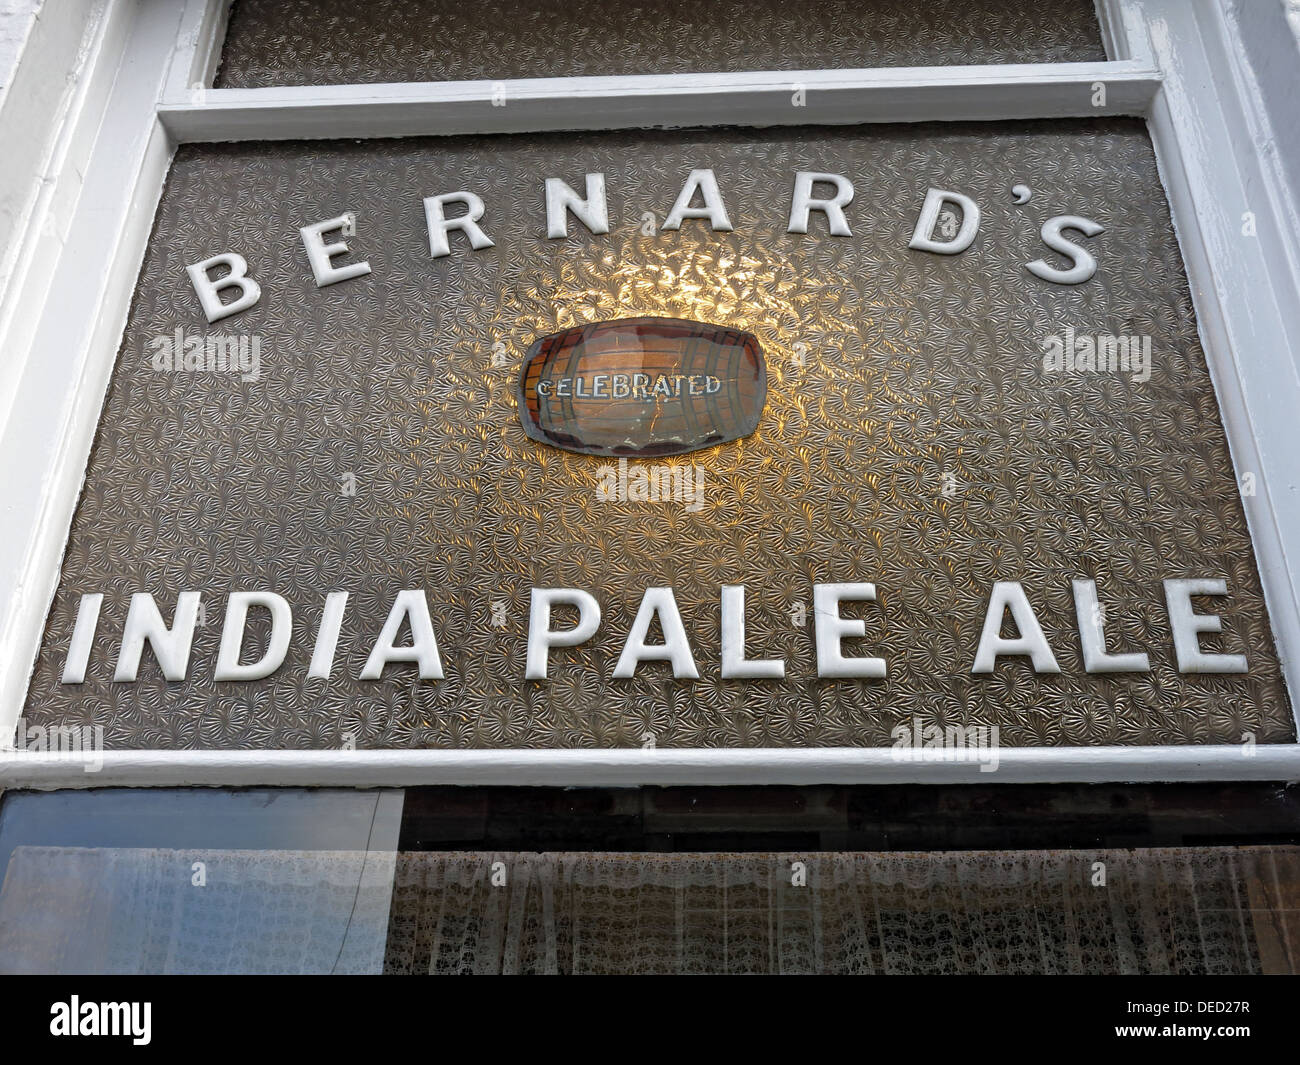 Bernards India Pale Ale sign at the Oxford Bar is a public house situated on Young Street, in the New Town of Edinburgh Stock Photo